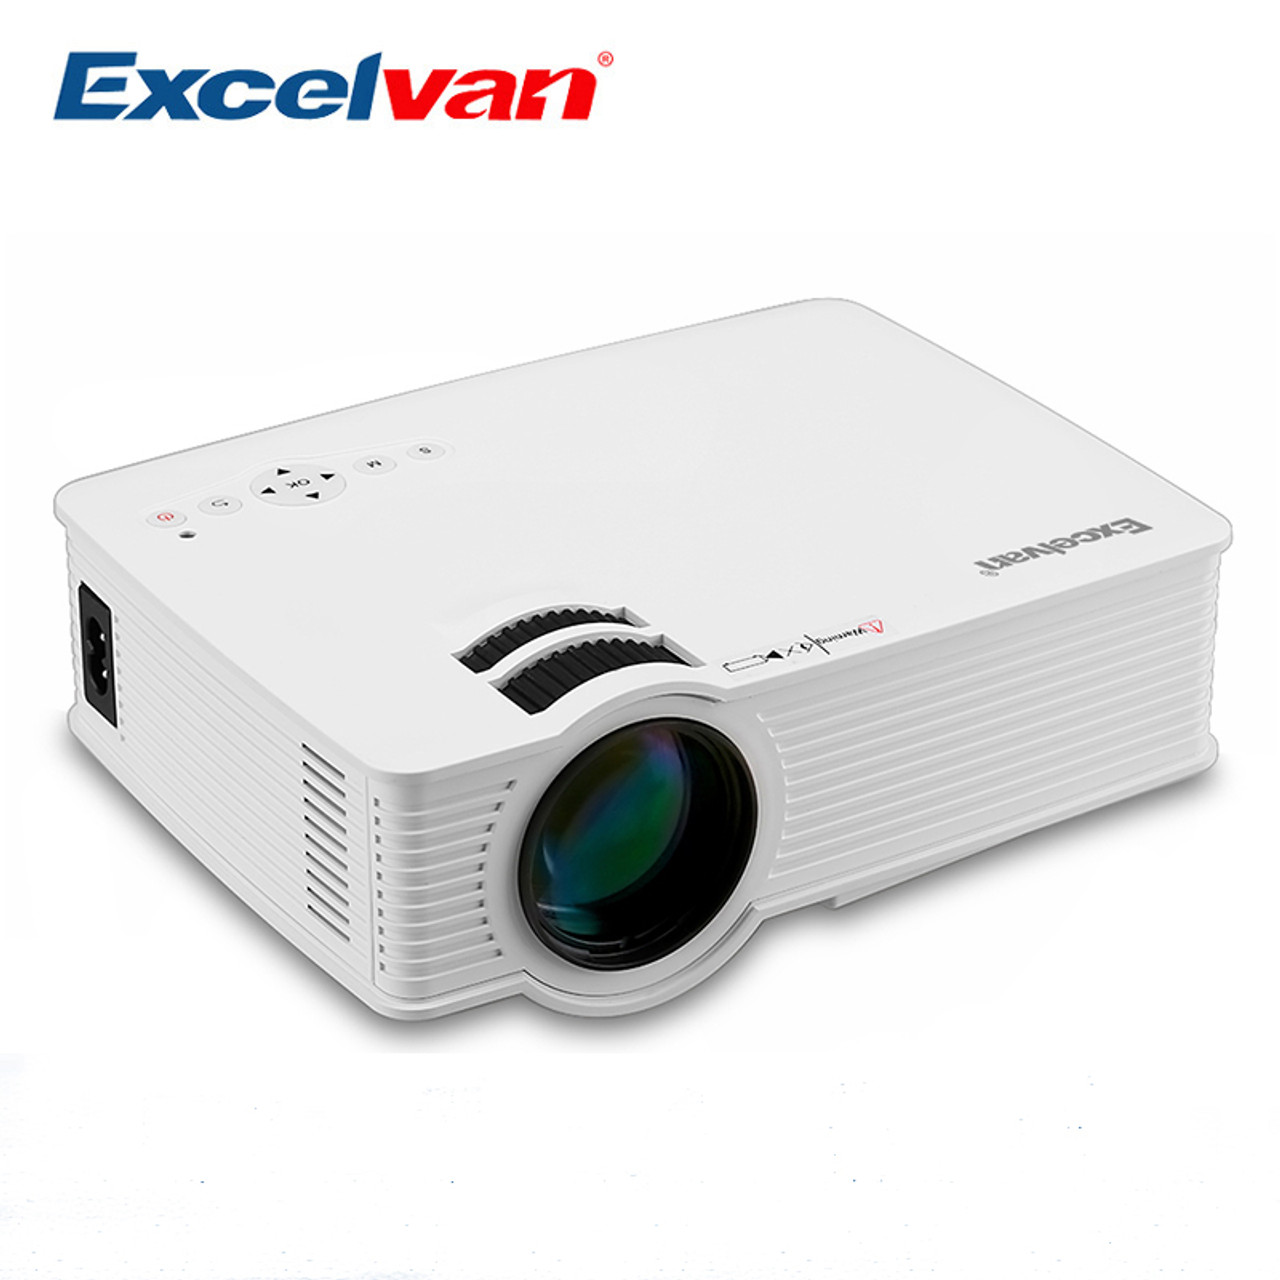 Excelvan gp9 portable mini projector video lcd digital for Small lcd projector reviews